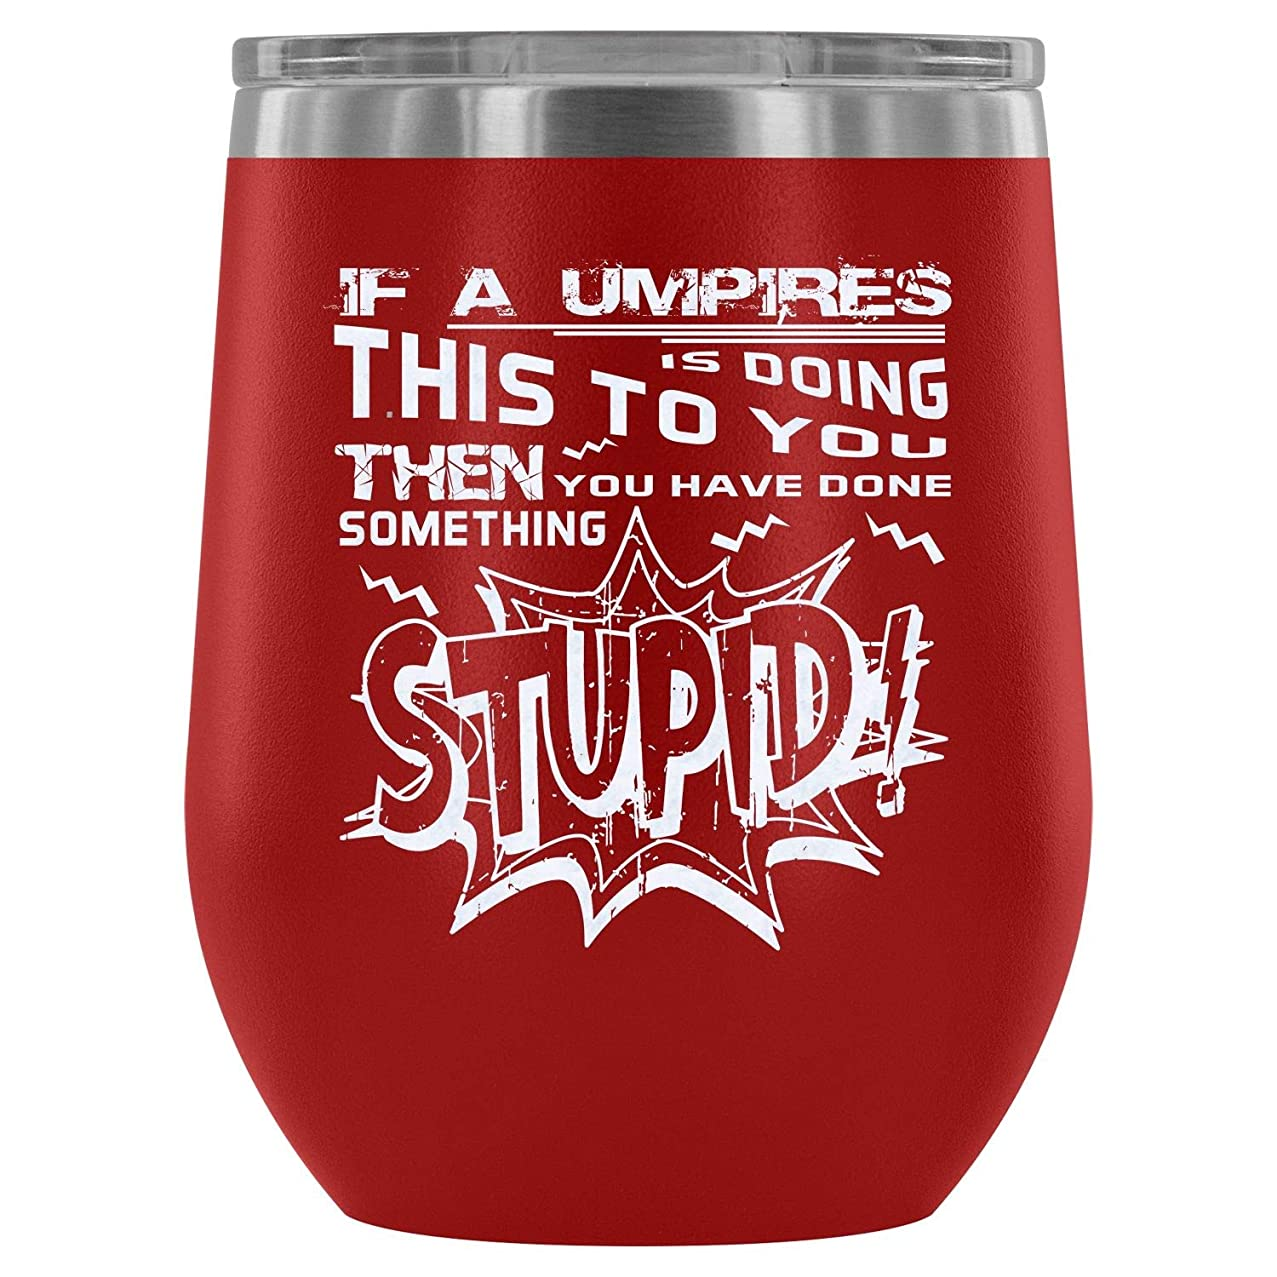 Mom Mug-Steel Stemless Wine Glass Tumbler, Cricket Player Vacuum Insulated Wine Tumbler, Playing Cricket Wine Tumbler (Wine Tumbler 12Oz - Red)